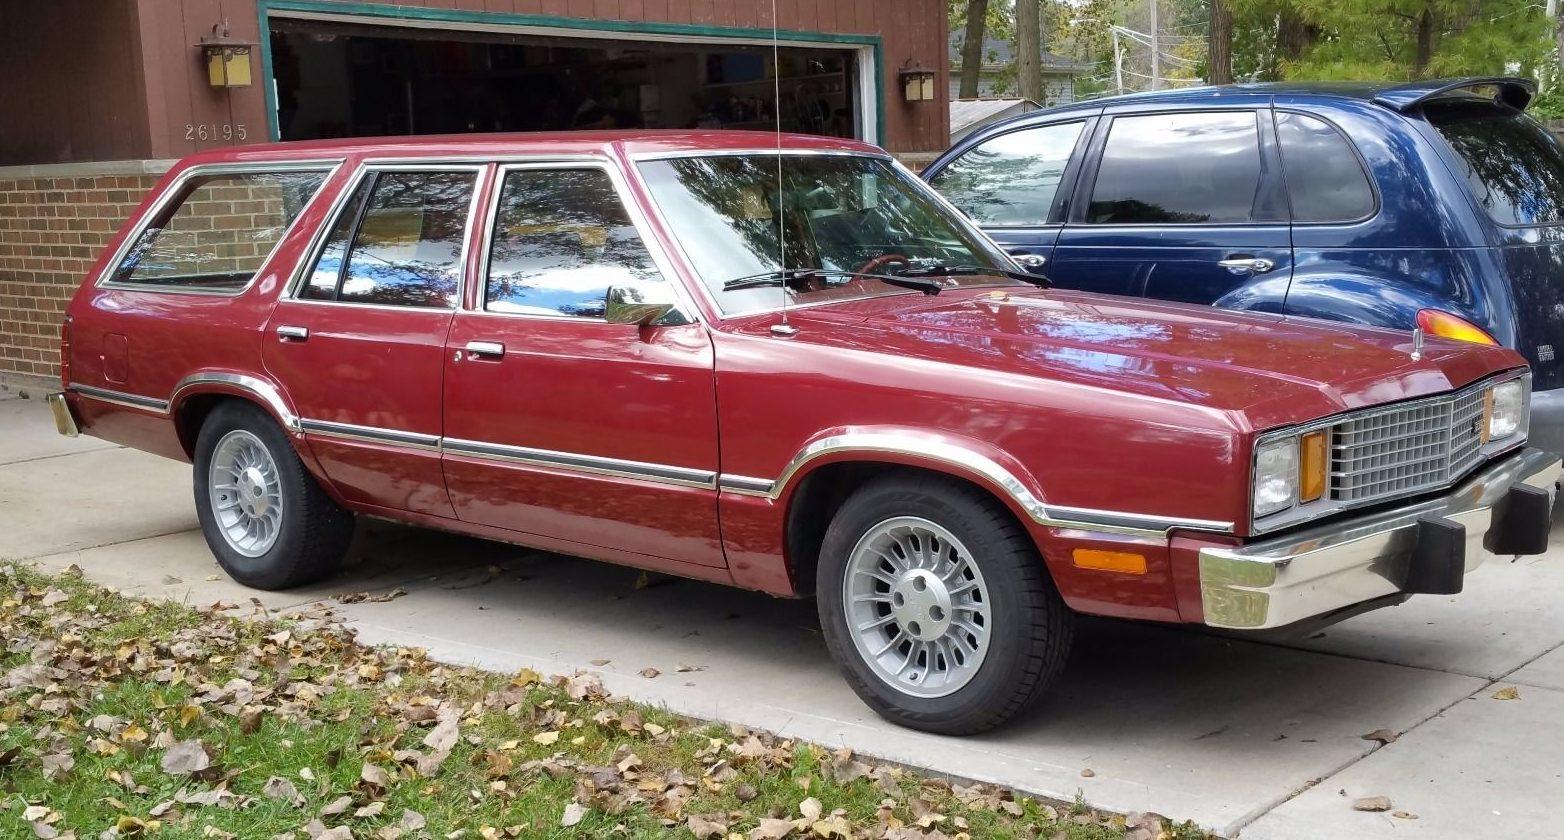 Low Mileage Truckster: 1979 Ford Fairmont